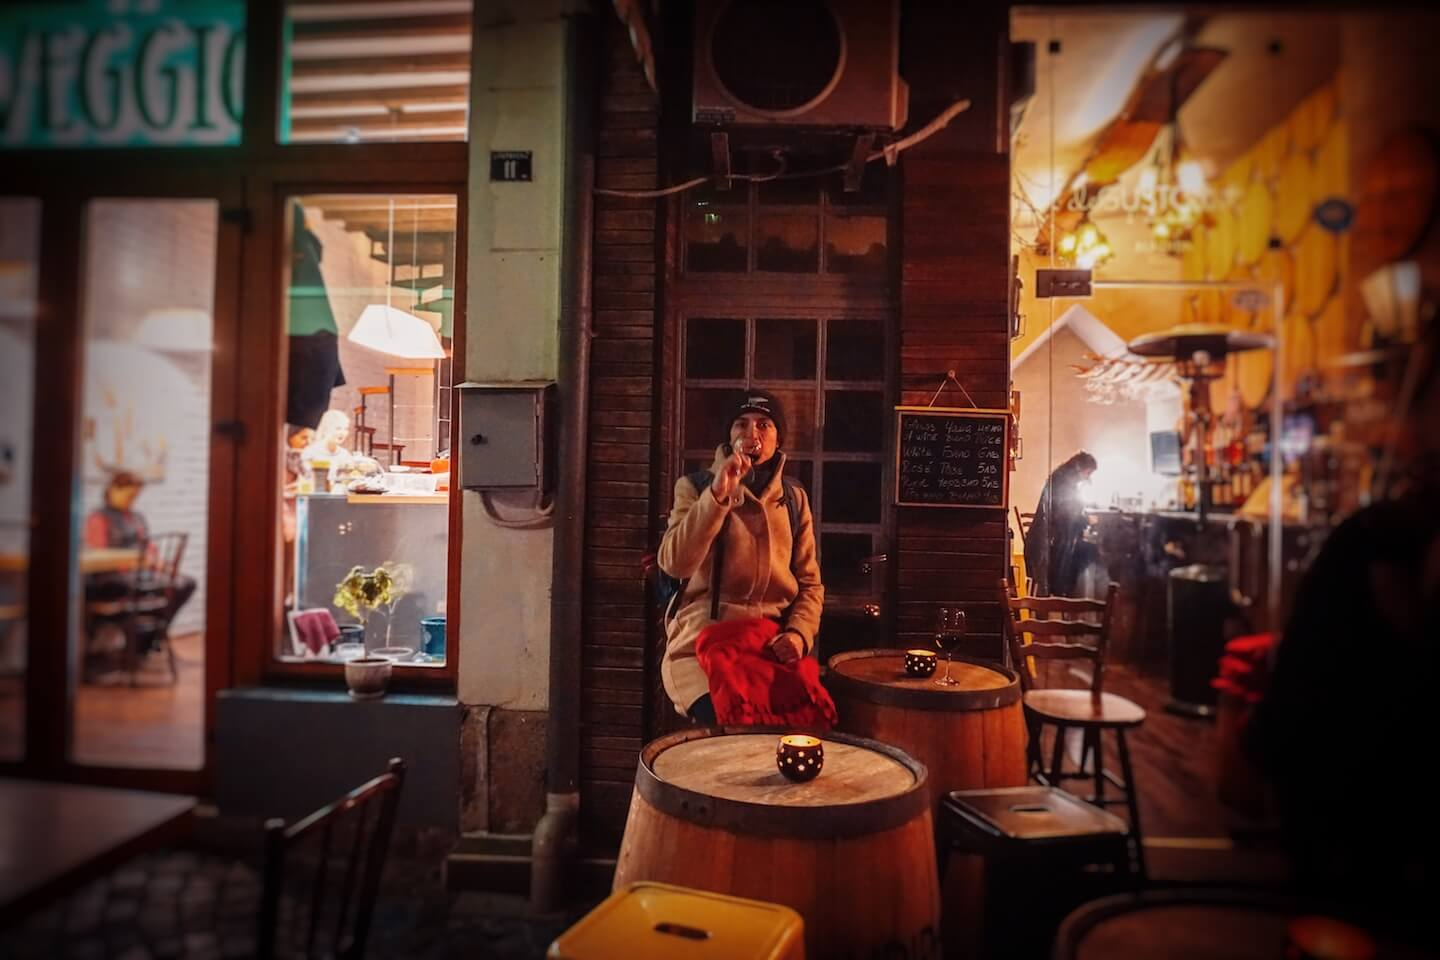 DeGustation Wine Bar, Best Things to Do in Plovdiv, Bulgaria - Wine Edition